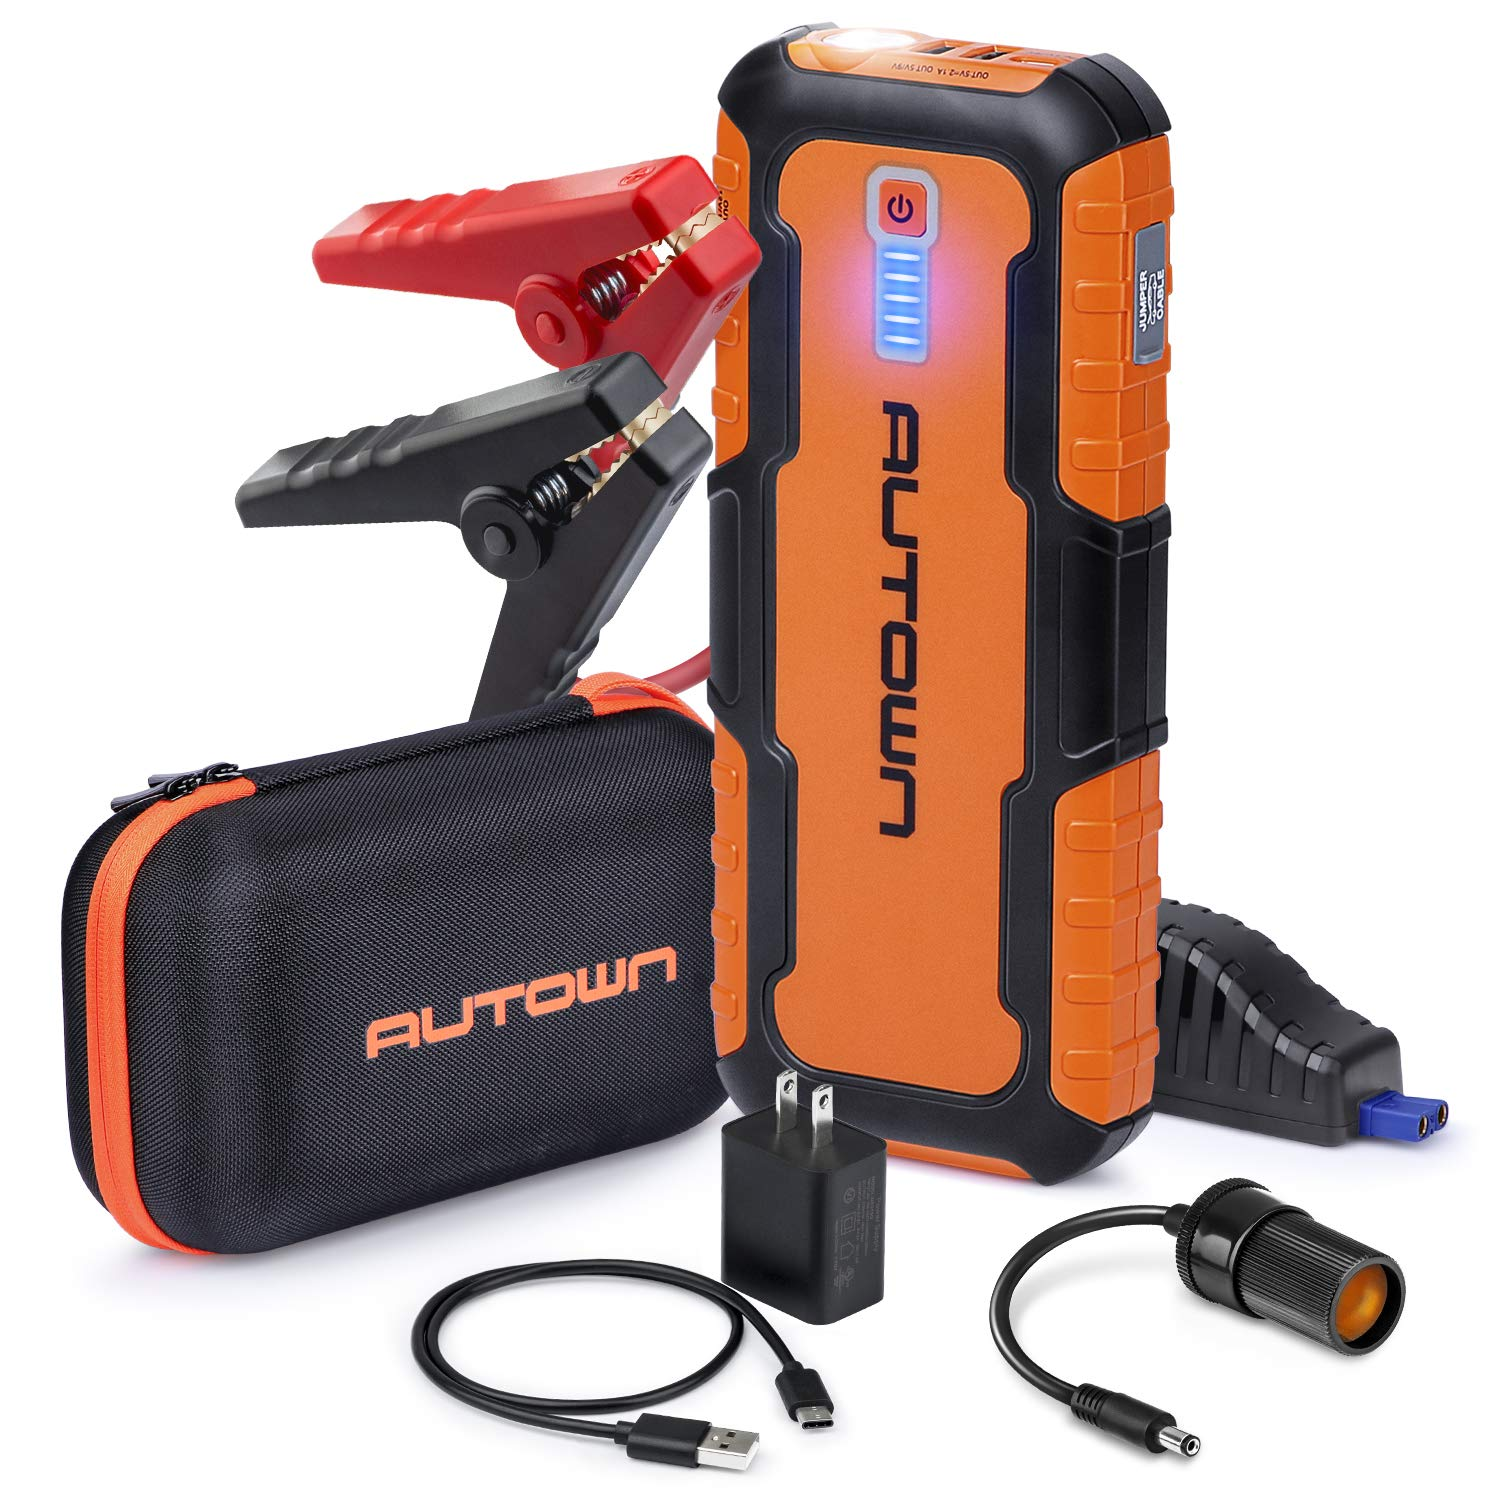 AUTOWN Car Jump Starter – 21000mAh 1000A Peak, 12V Auto Battery Booster With Quick Charge (Up To 8.0L Gas, 6.5L Diesel Engine), Portable Power Pack & Jump Box With Smart Jumper Cables And LED Light